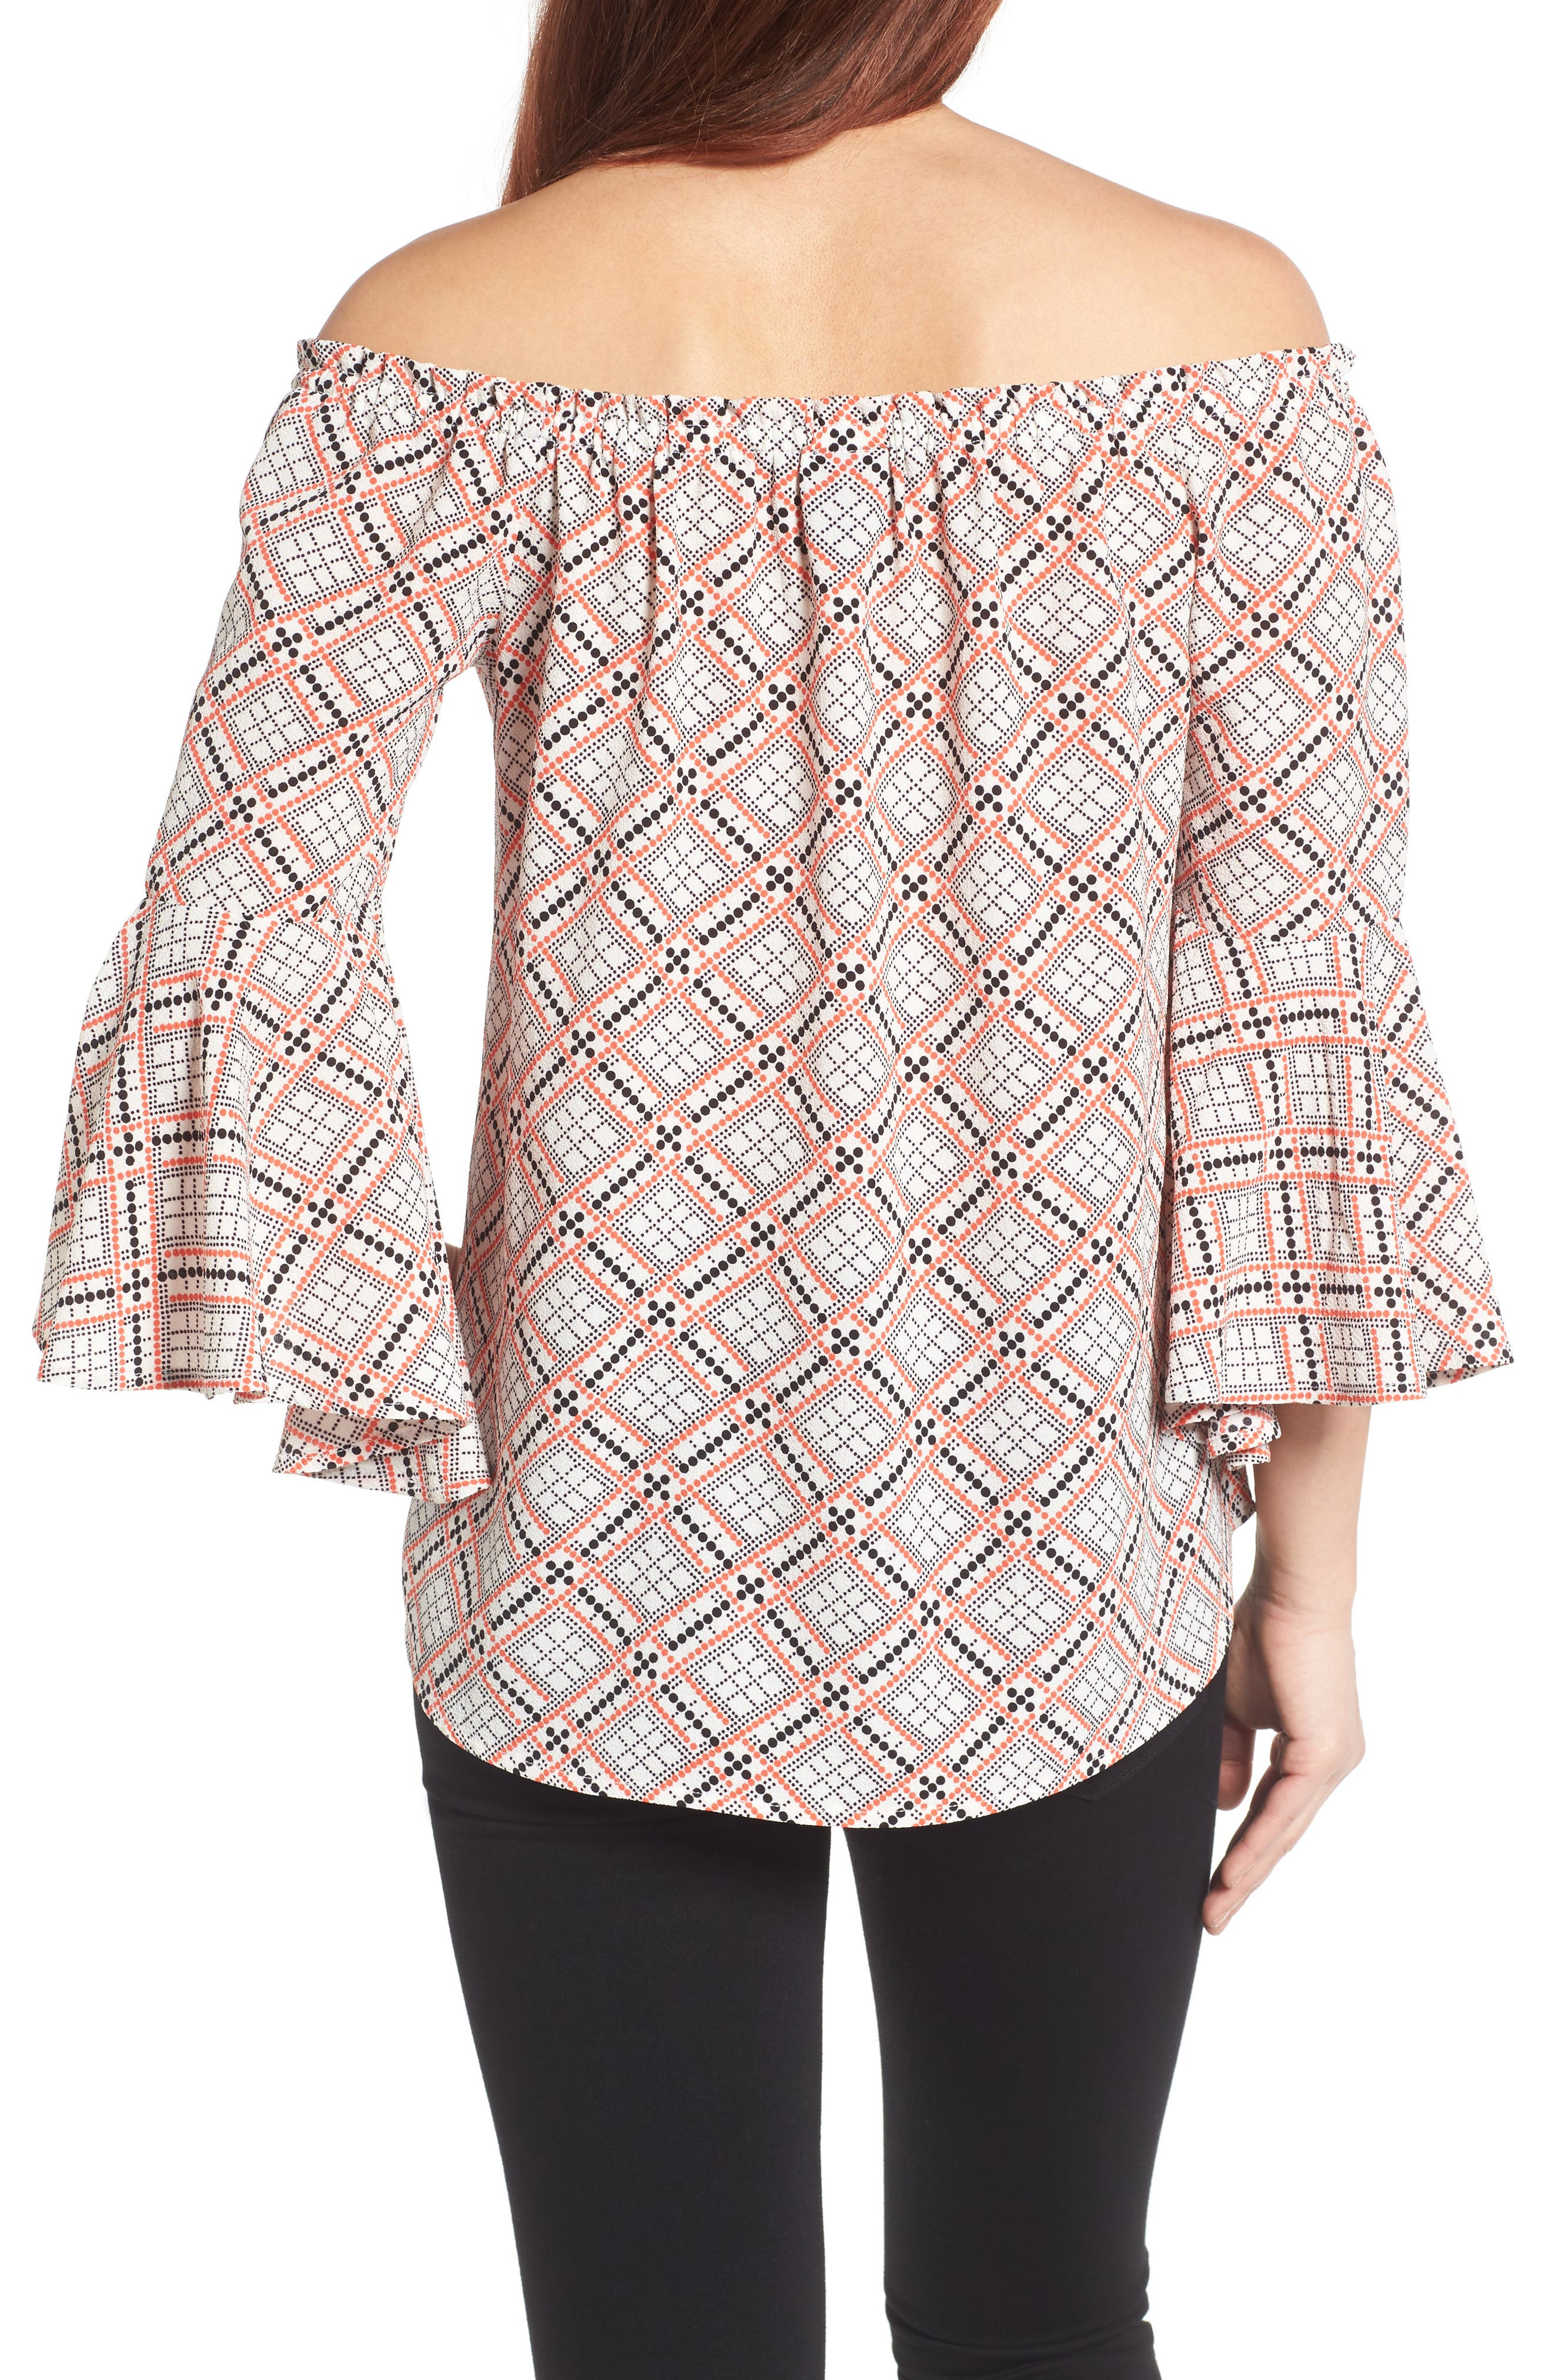 Bell Sleeve Off the Shoulder Blouse,                             Alternate thumbnail 4, color,